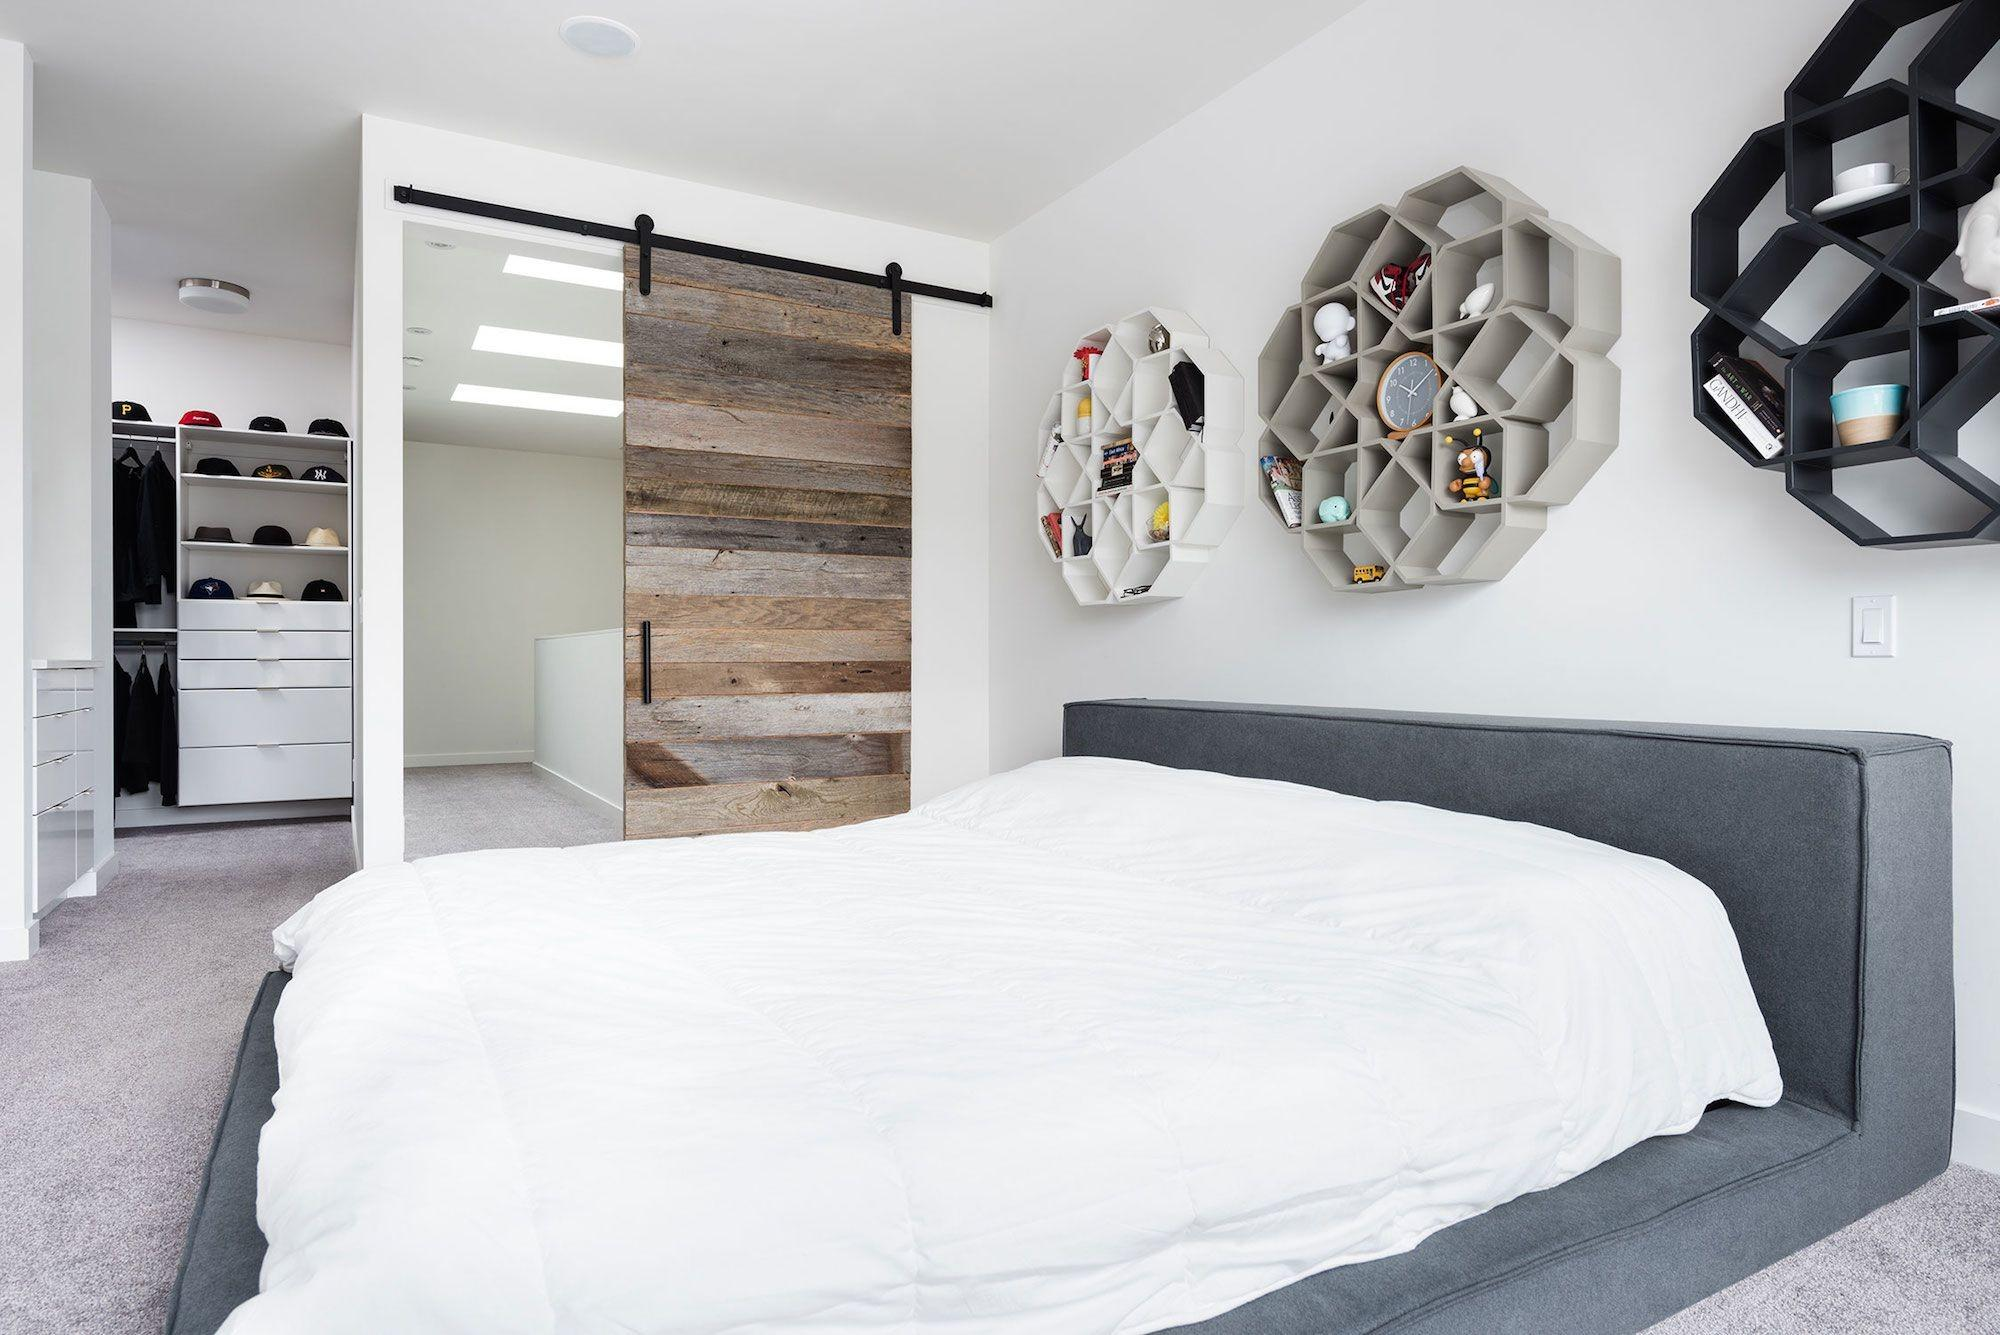 Project B95 Beyond Homes Caandesign Architecture